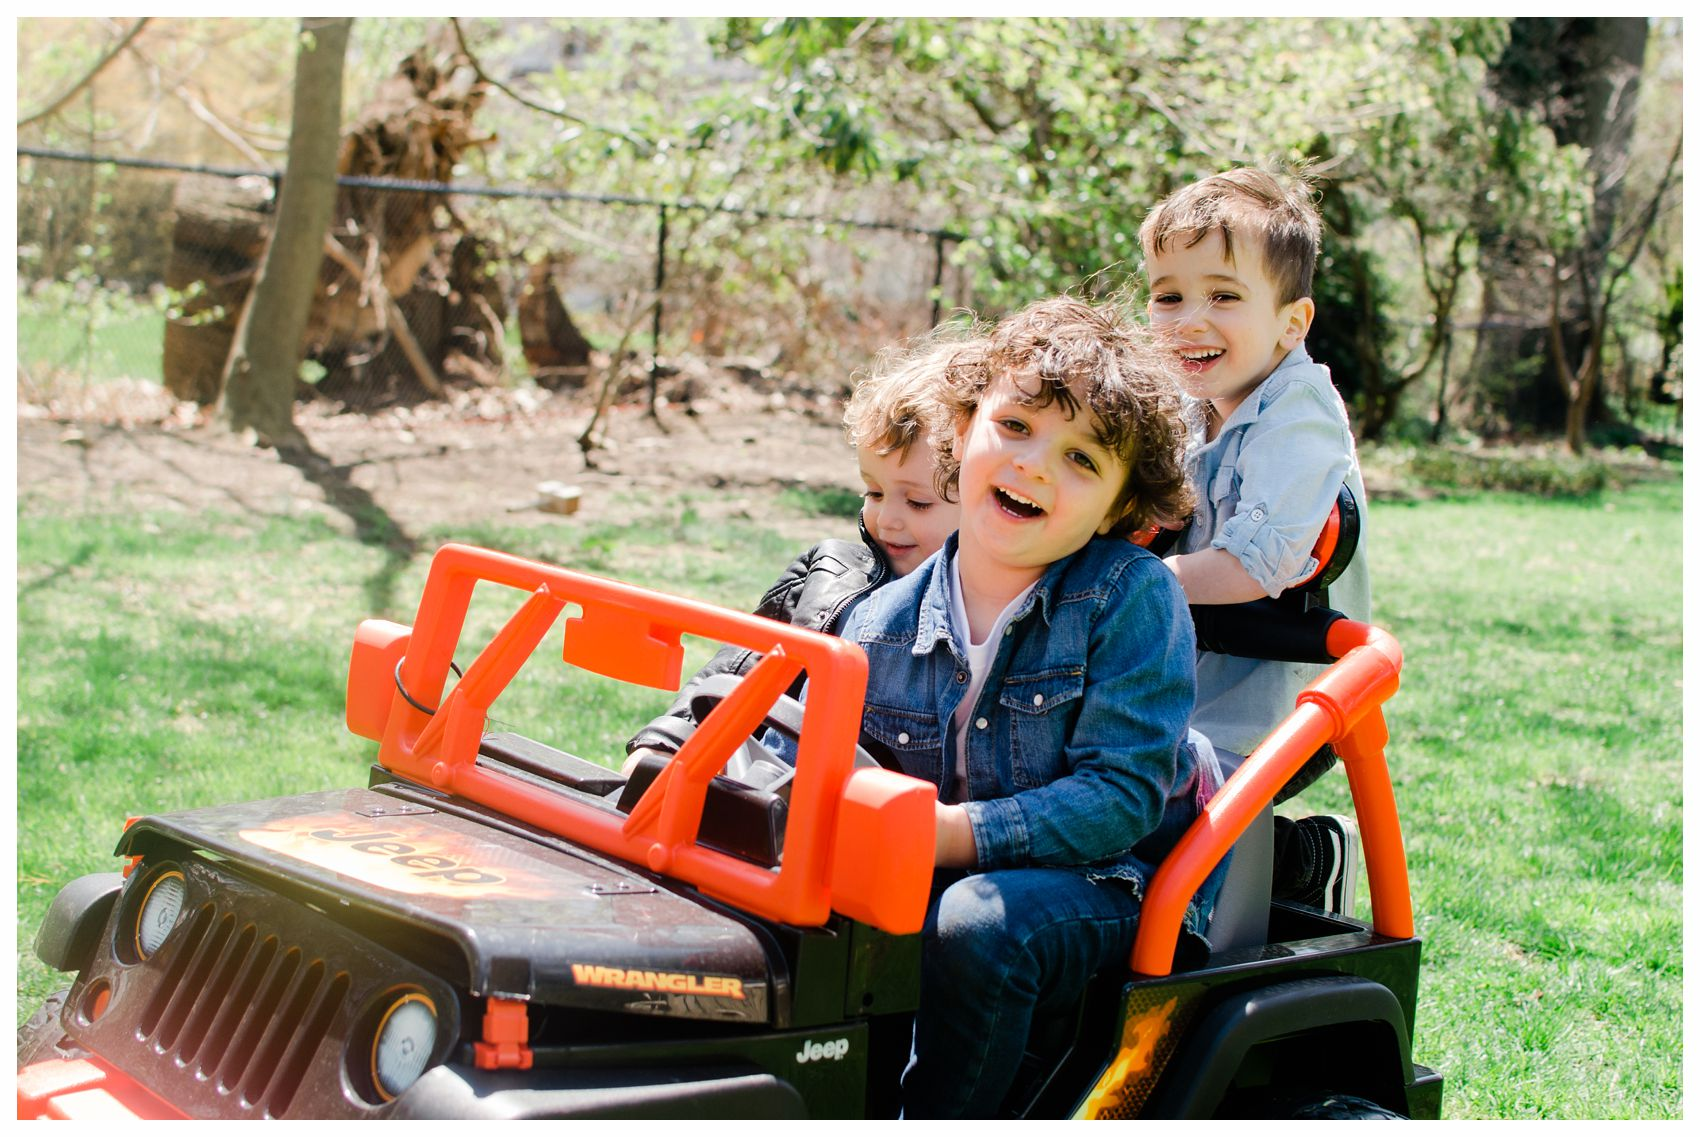 three laughing kids riding a car in their backyard in New Jersey